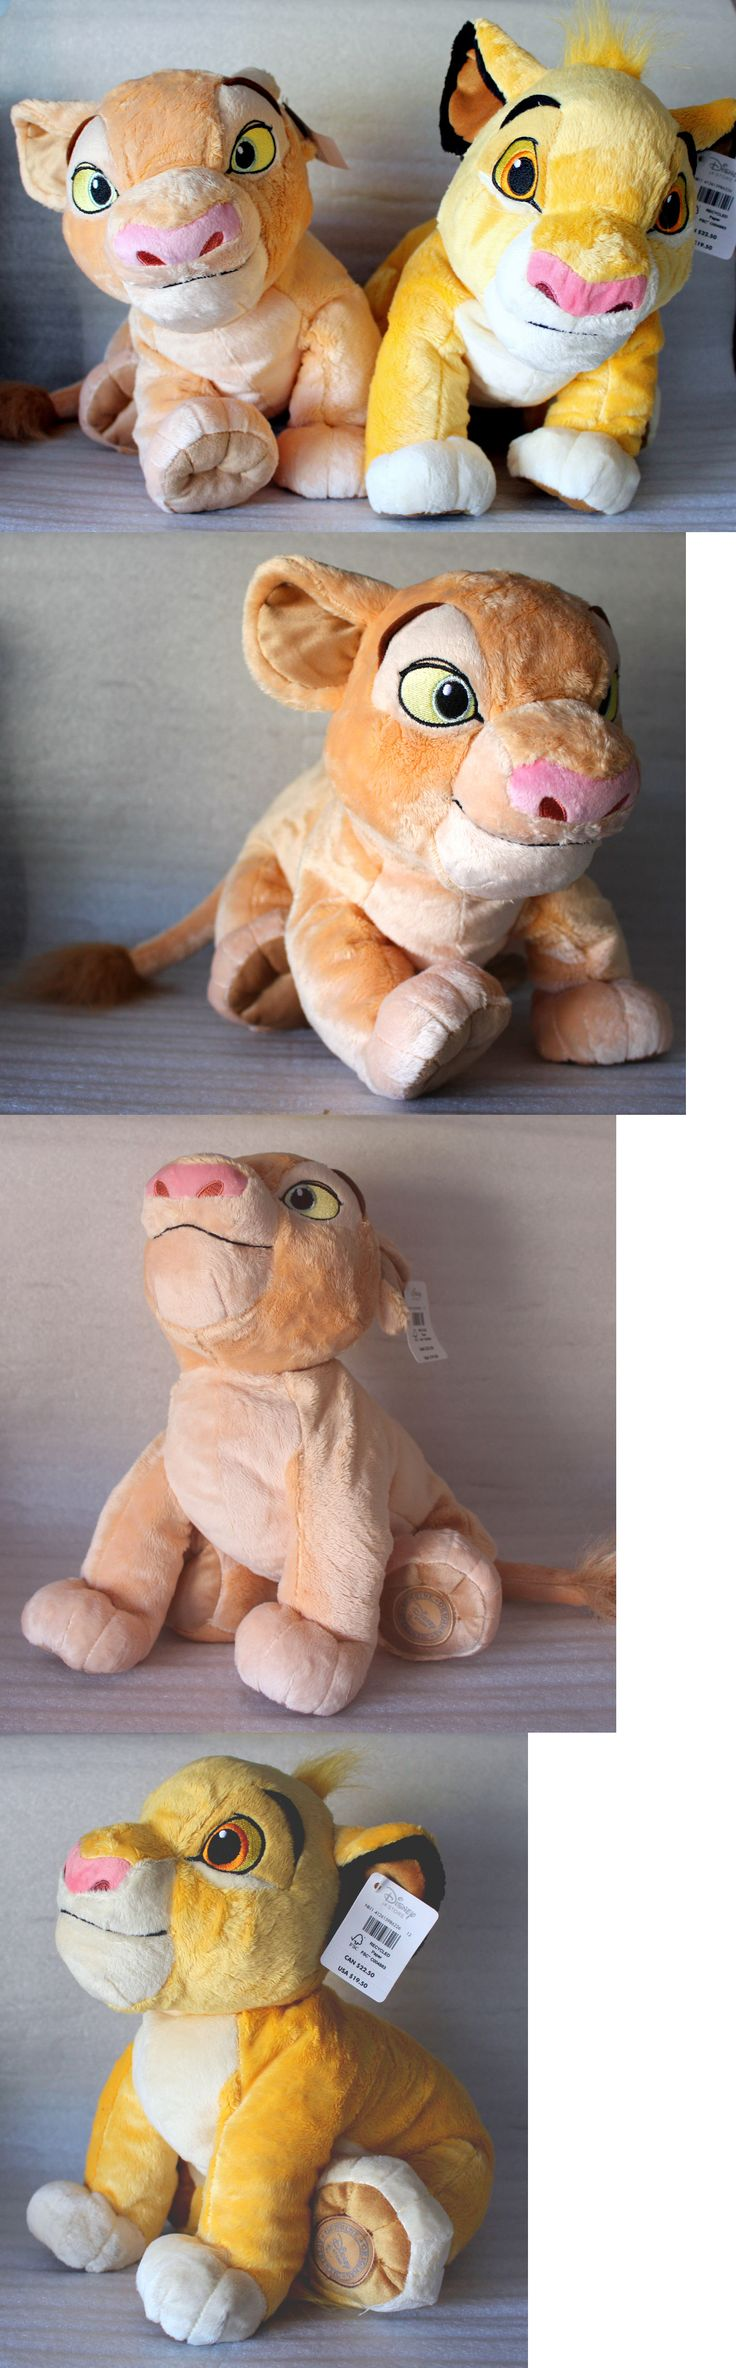 Lion King 44037: Disney Store The Lion King Young Simba And Nala Cub Medium Plush Toy Stuffed New -> BUY IT NOW ONLY: $39.99 on eBay!